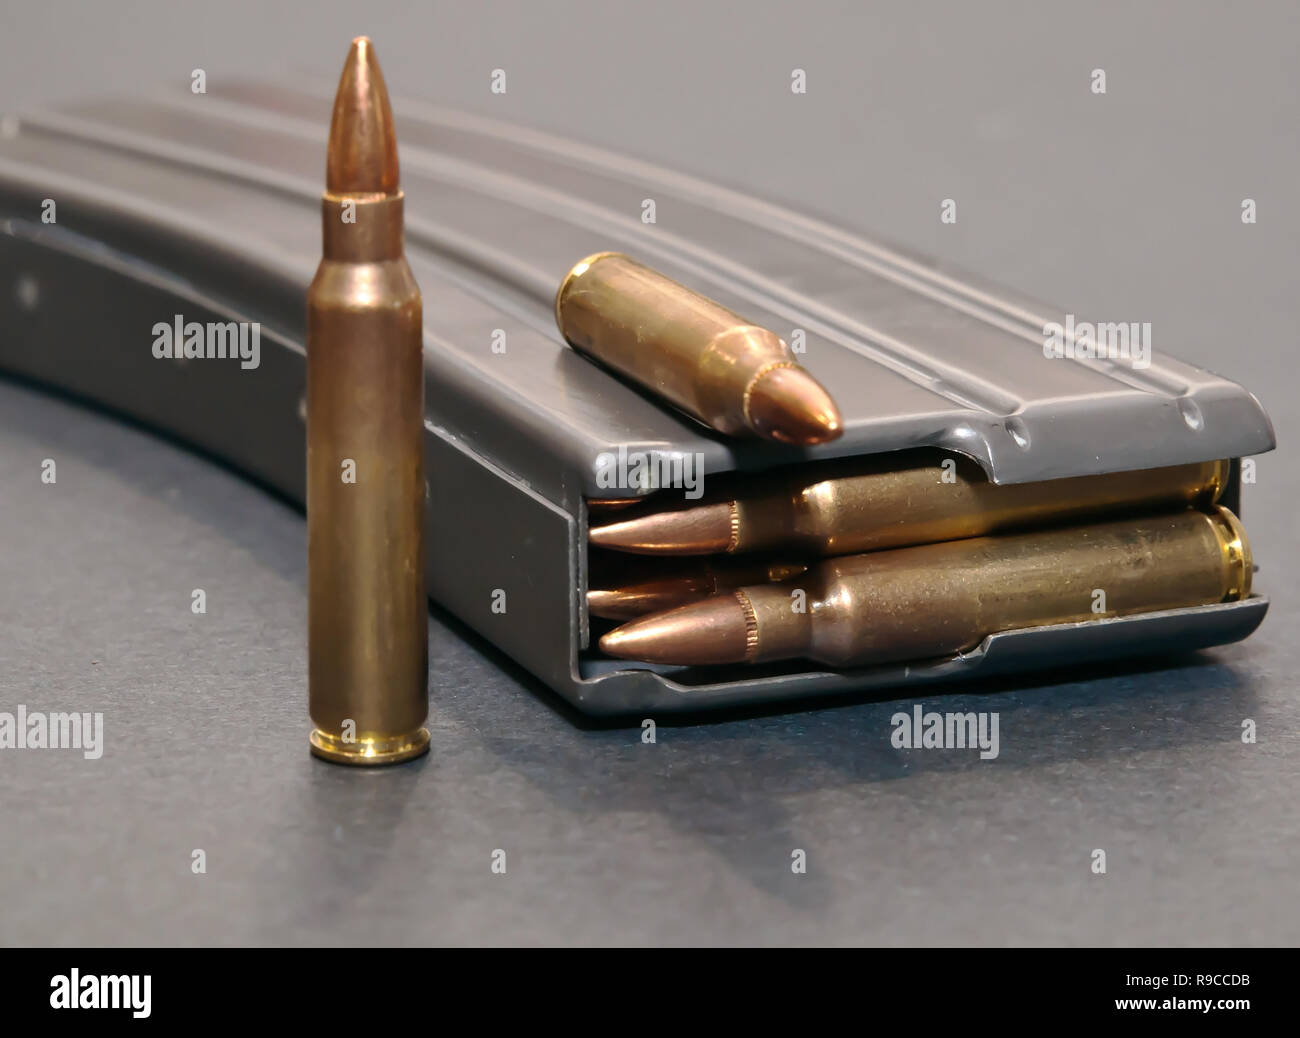 A rifle magazine loaded with .223 bullets on a gray background with two extra bullets - Stock Image